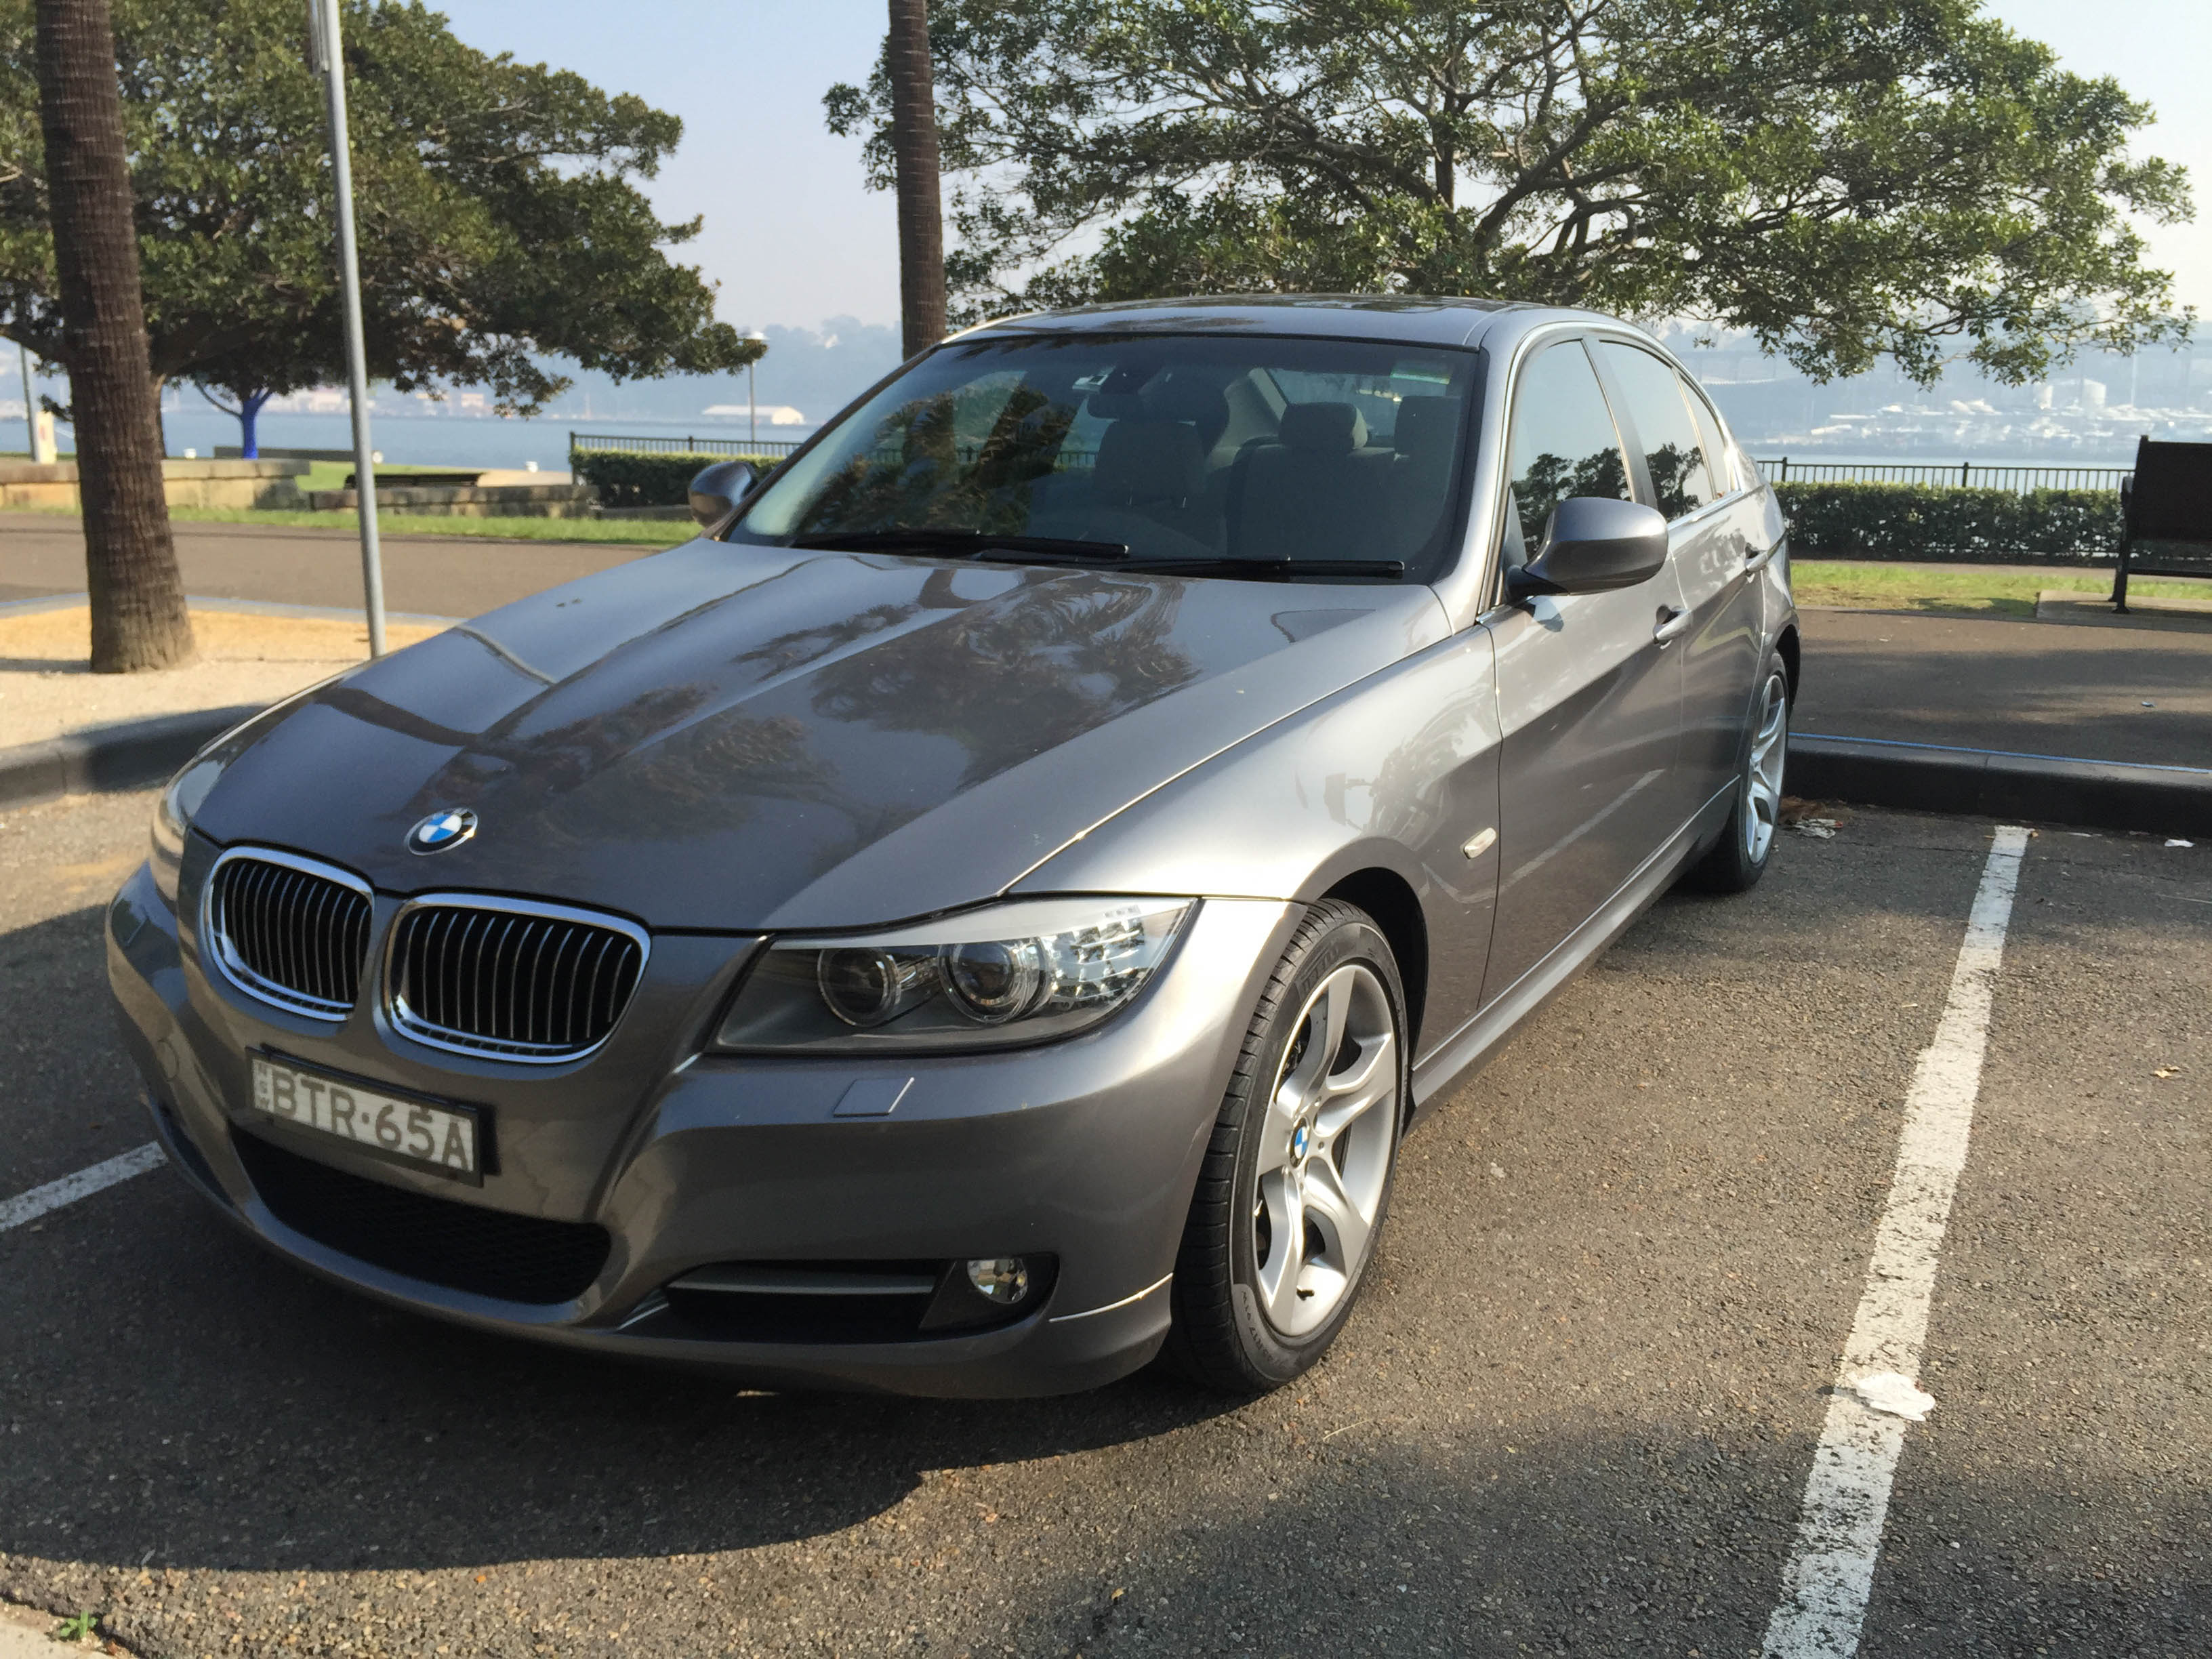 Picture of Sajan Man's 2010 BMW 323I